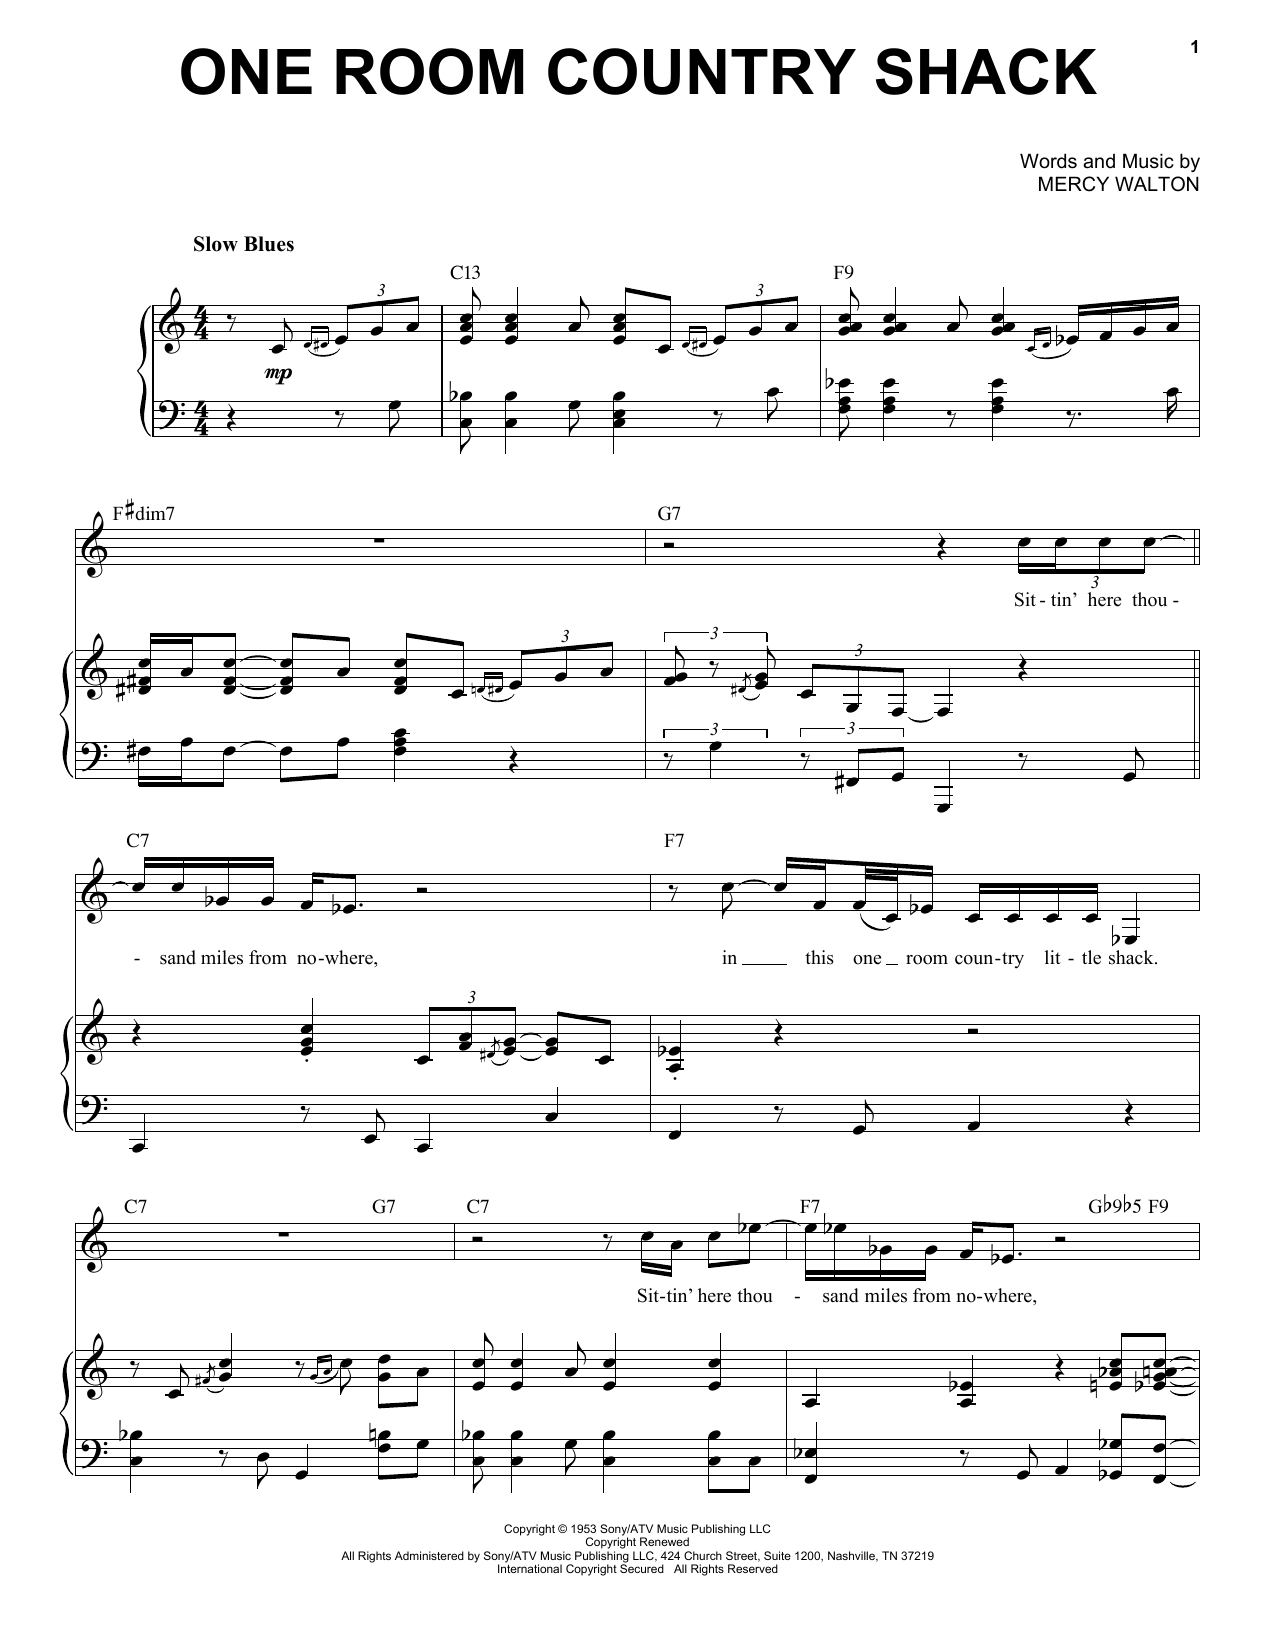 One Room Country Shack Sheet Music